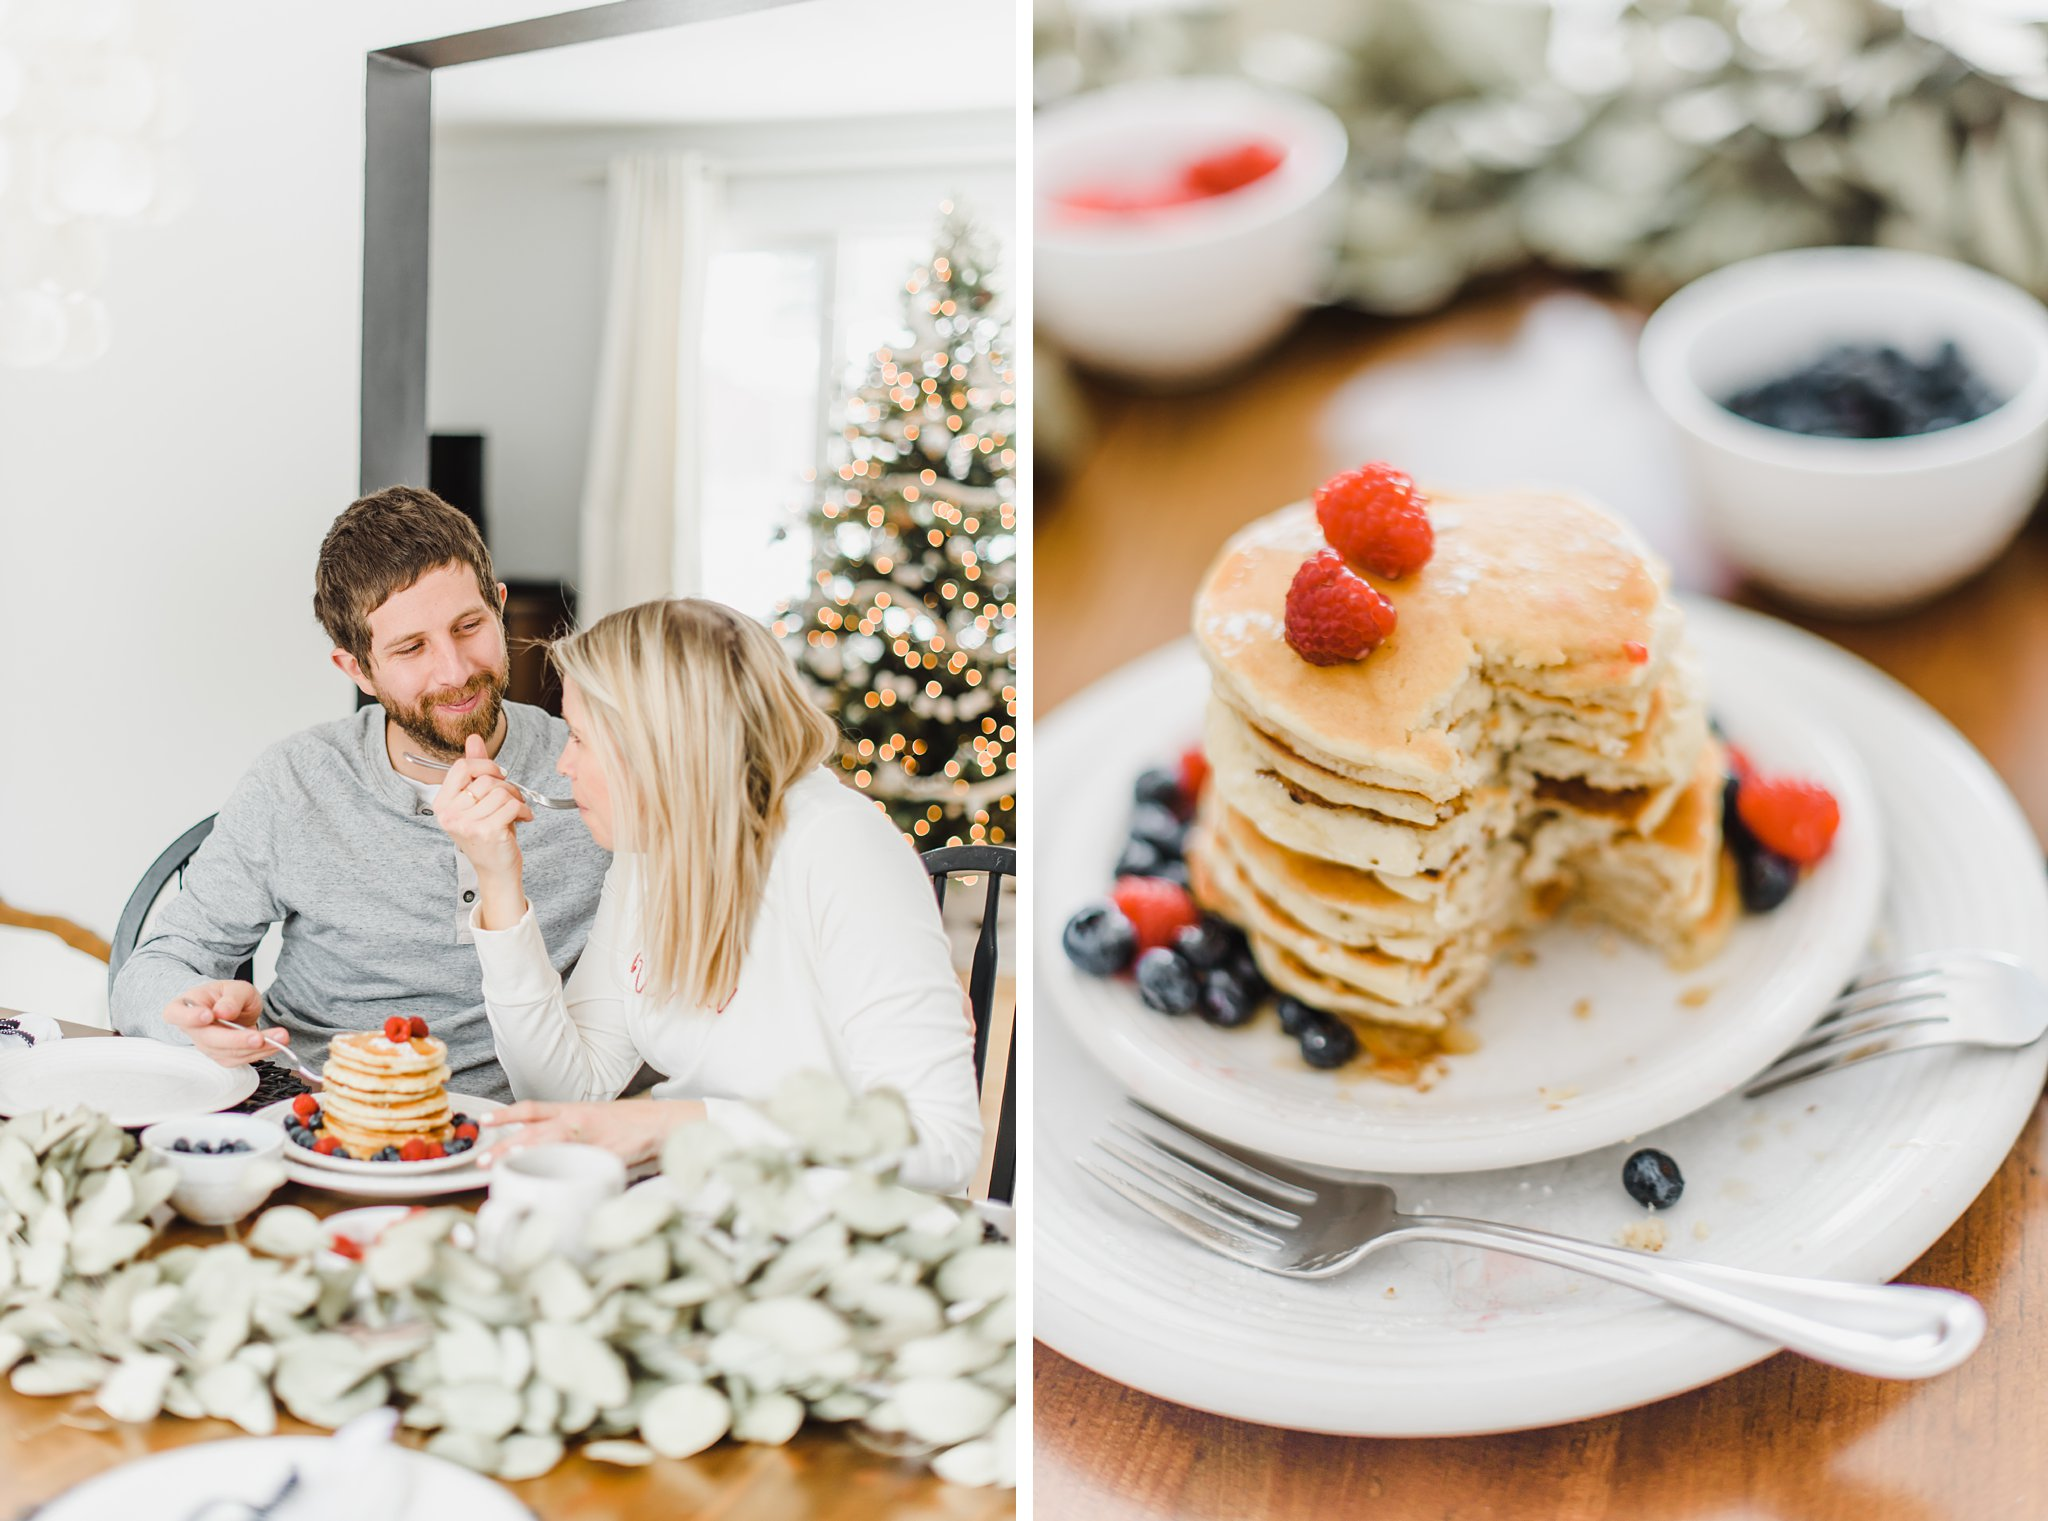 Pancake tower with a bit taken out, Lifestyle Maternity Photos in Ottawa on 'Pancake Sunday'